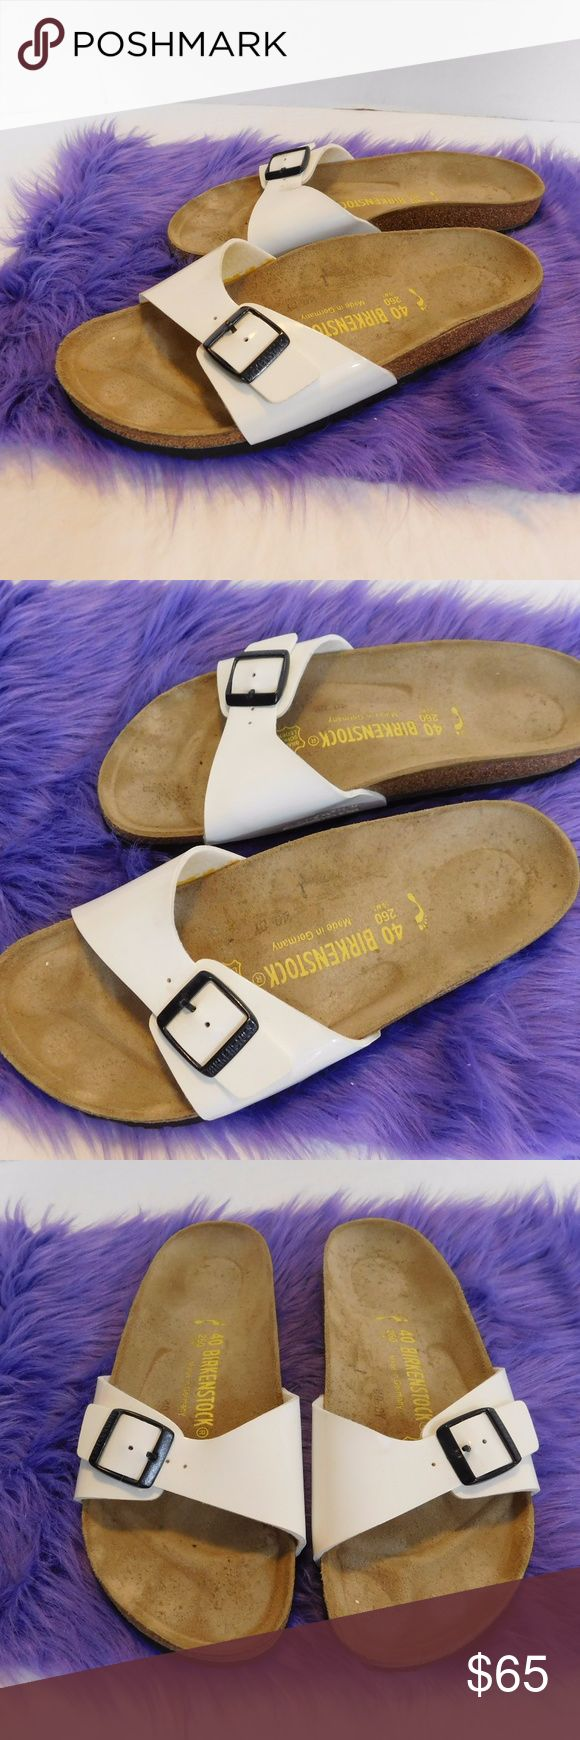 WHITE BIRKENSTOCK SLIPPERS SLIDES SIZE 40 BIRKENSTOCK WHITE SLIDE IN SIZE 40 CONDITION- VERY NICE AND CLEAN. Birkenstock Shoes Slippers